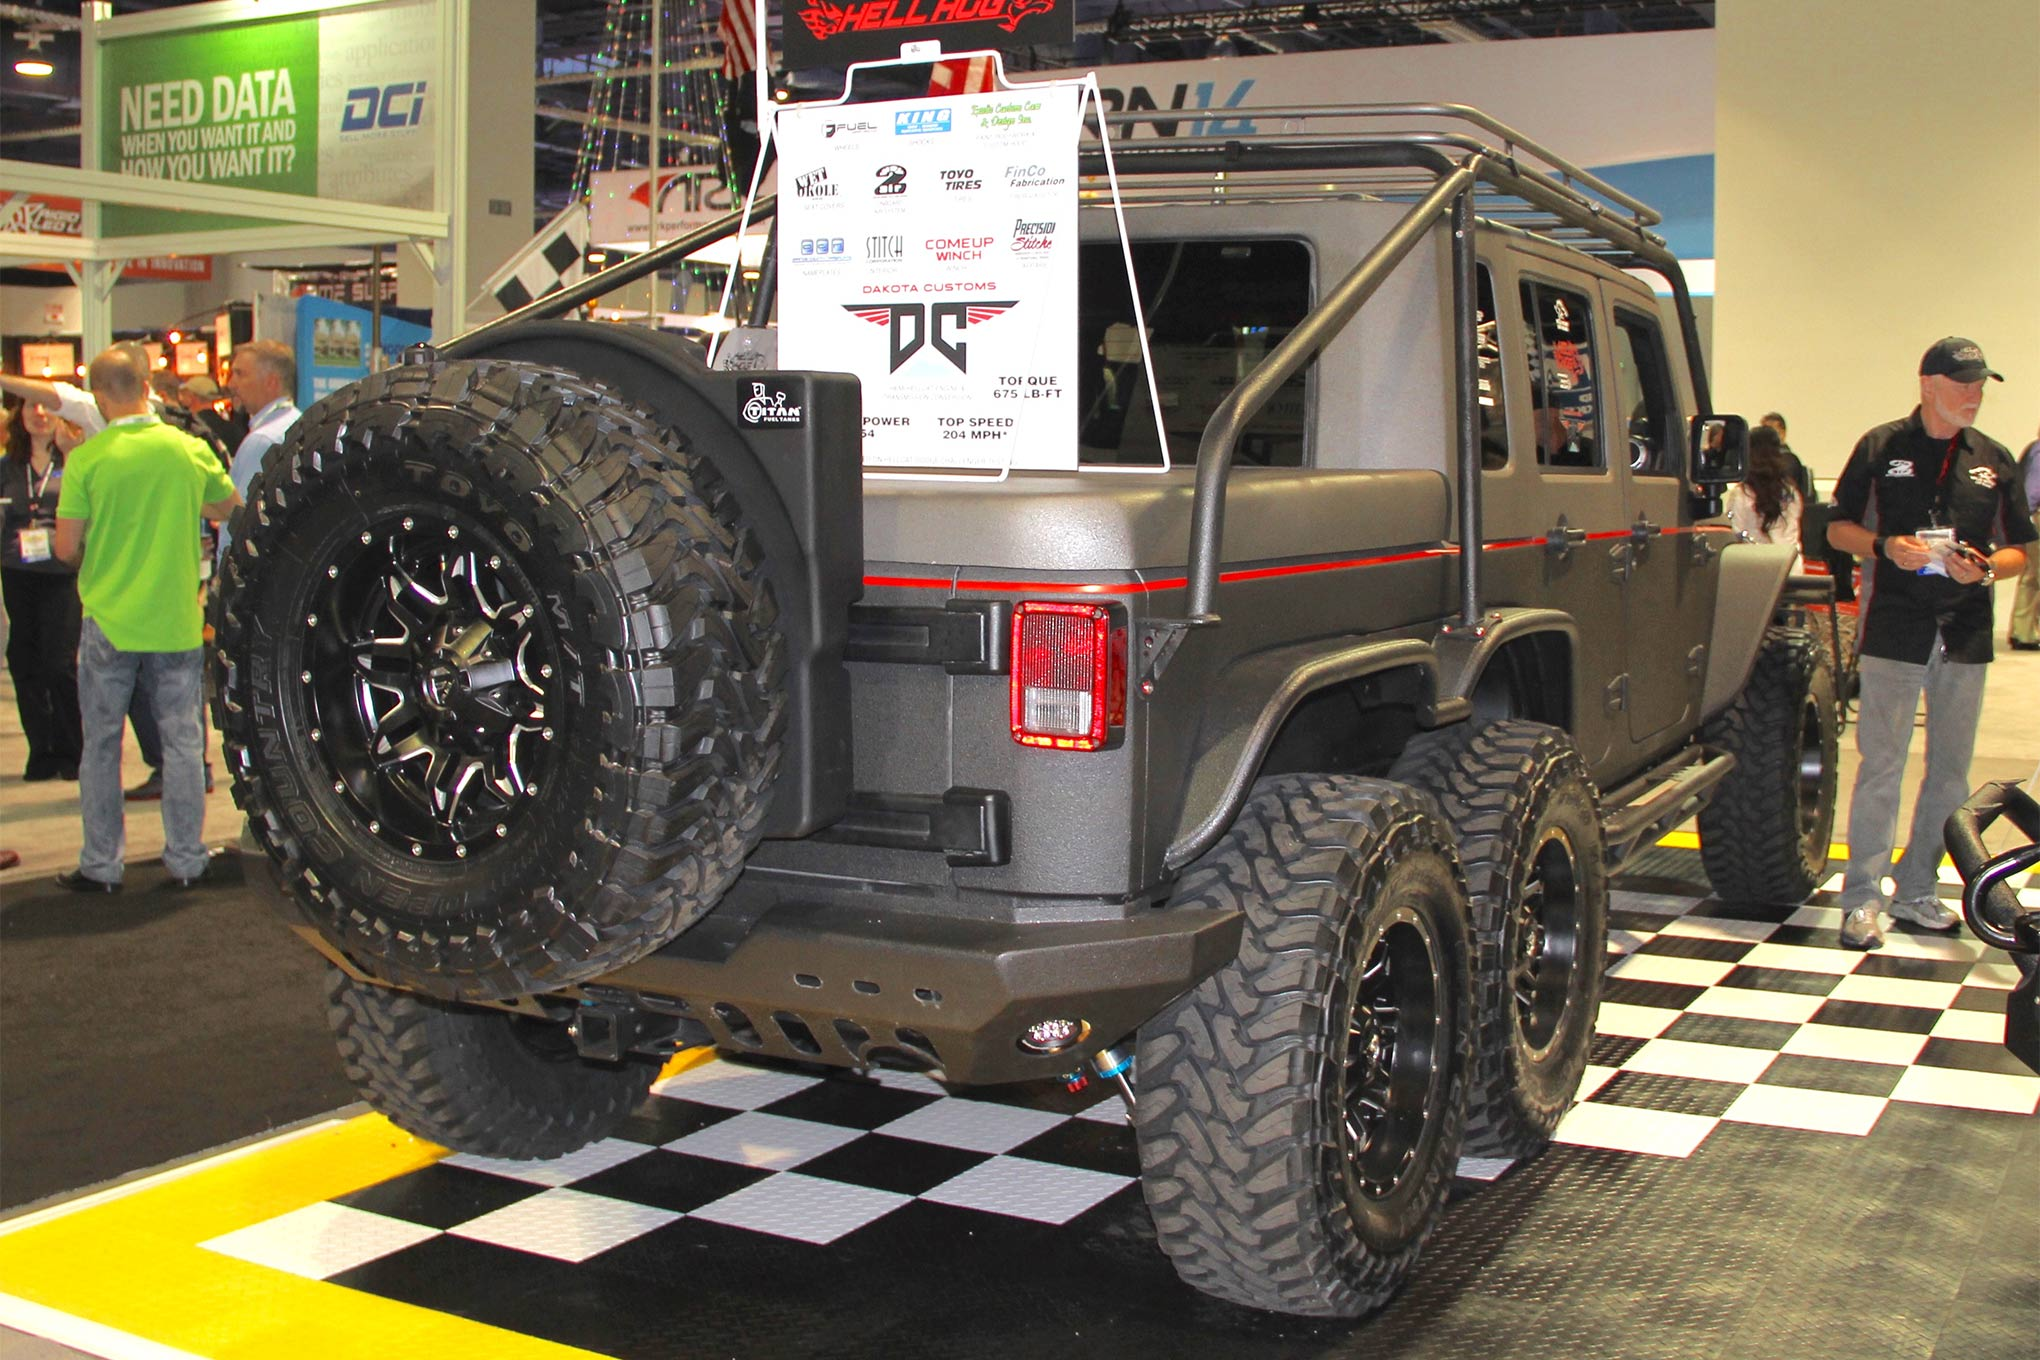 """Yes, Wild Boar's """"Hellhog"""" is a six-wheel Jeep Wrangler packing 800 hp of Hellcat goodness. Dakota Customs in Rapid City, South Dakota, provided the expertise to program the conversion. Utilizing the stock Jeep transmission necessitated finding a way to get the ECM's body control and transmission modules to communicate without those Hellcat components and functions."""